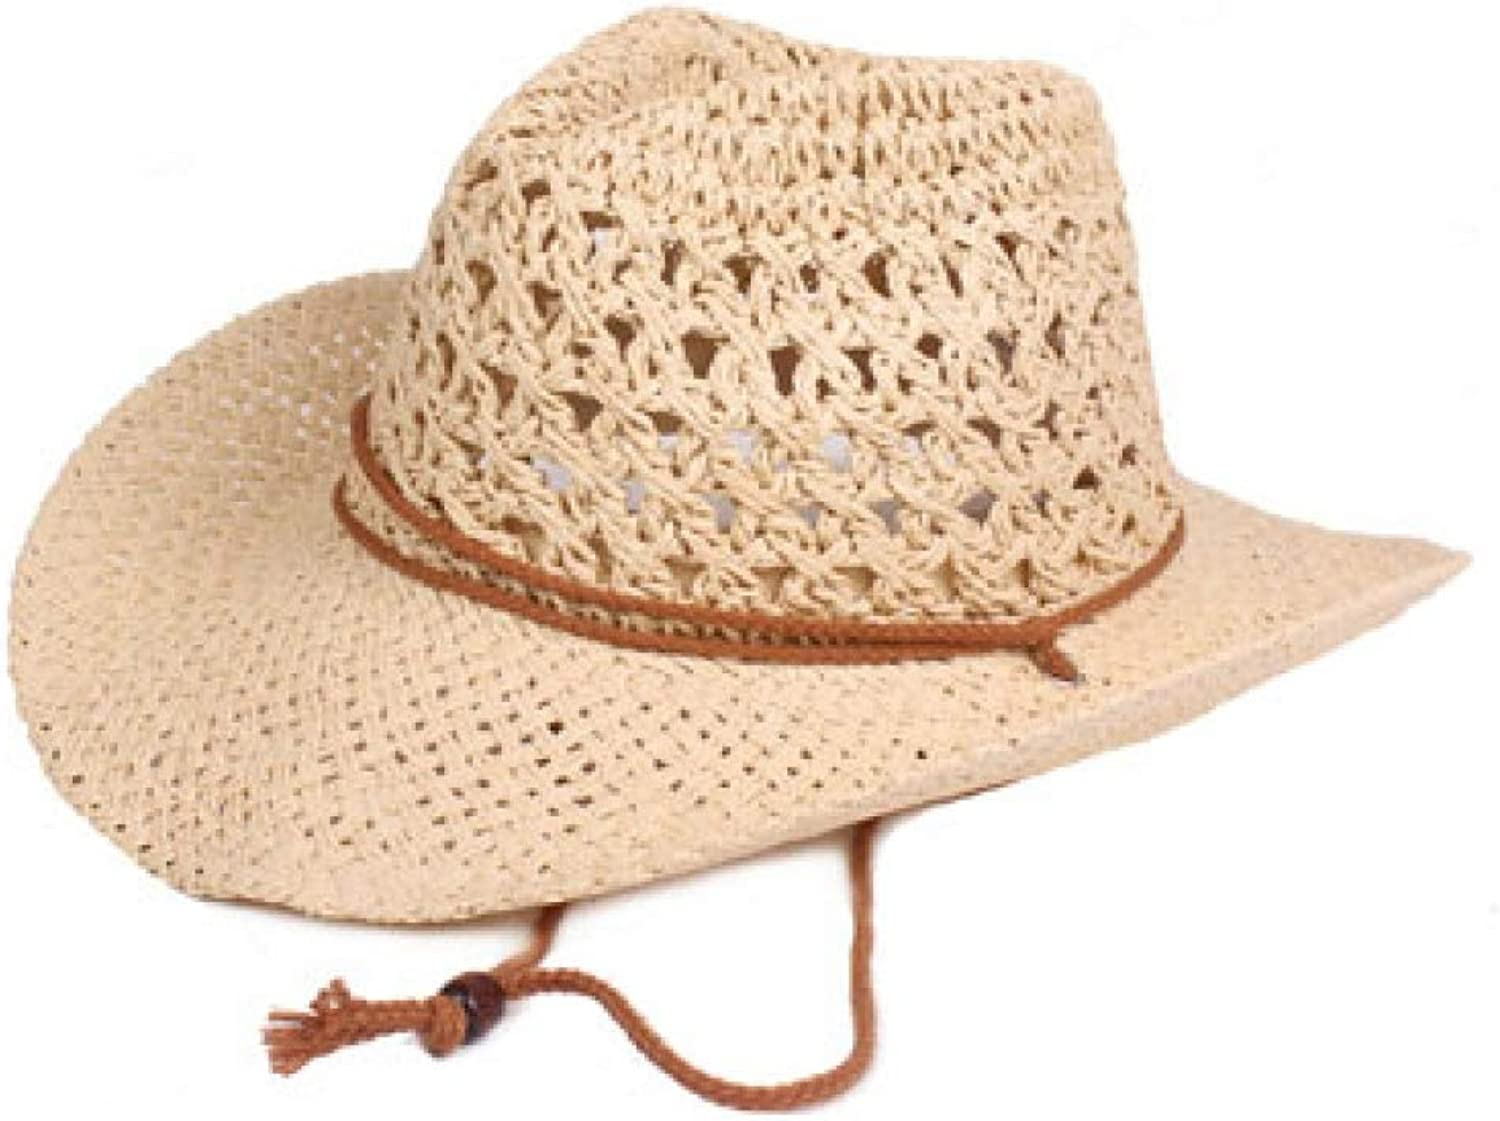 XDHRTS Women Men Wide Brim Straw Hat Fashion Chapeau Breathable Summer Lady Sun Hat Travel Beach Cap Sun Visors Fedoras